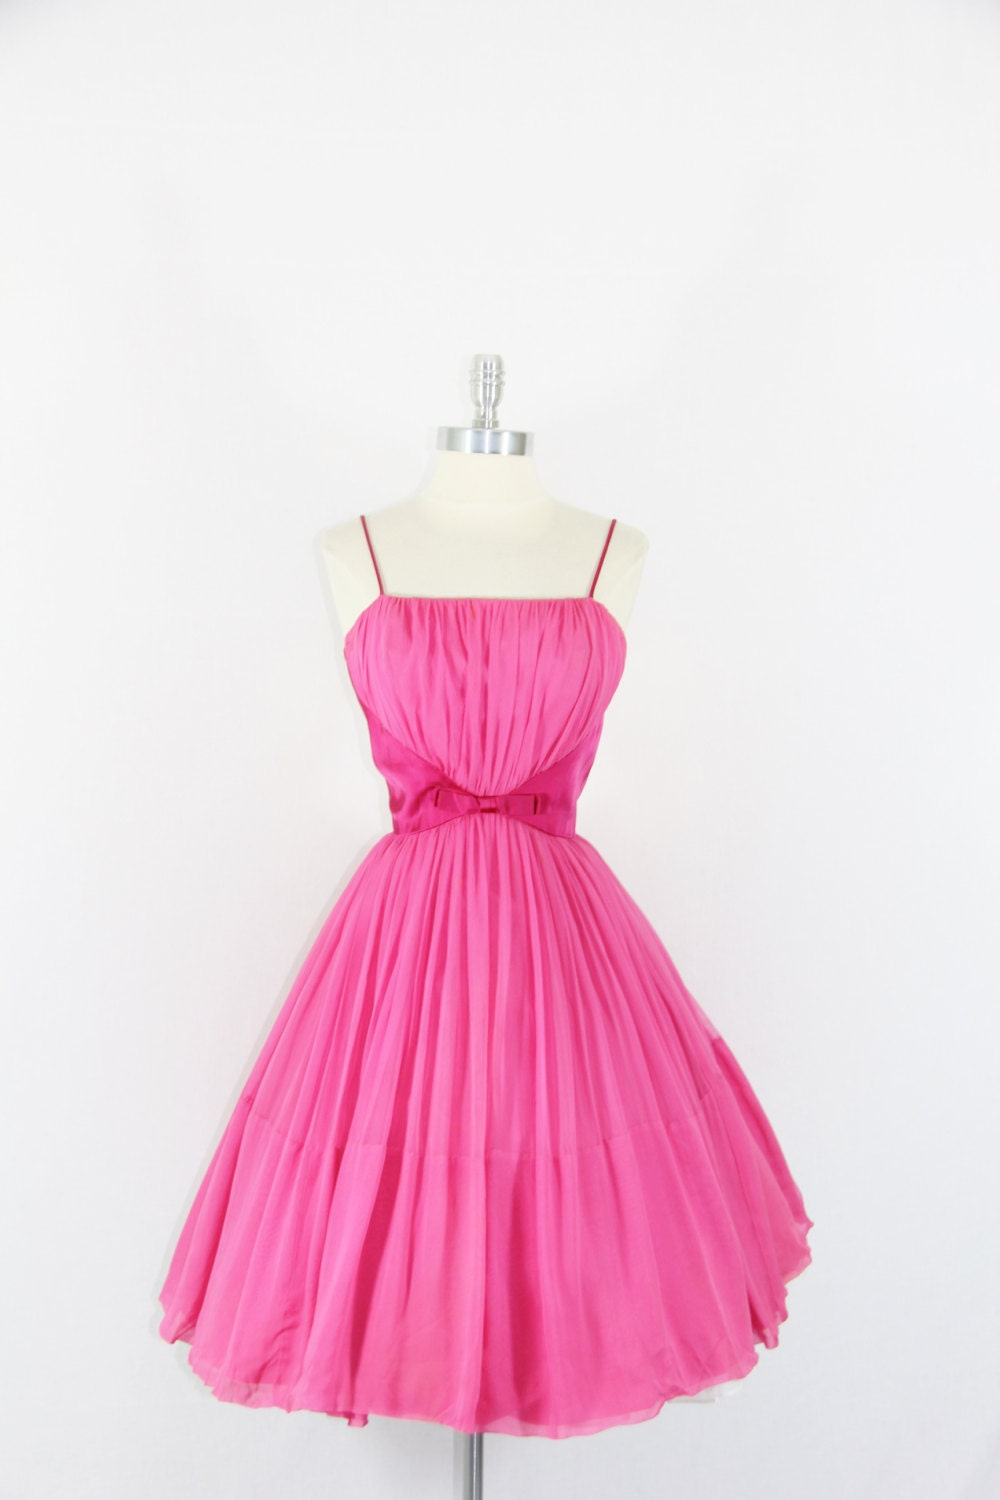 1950's Vintage Dress - HOT PINK Silk Chiffon Sexy Party Dress